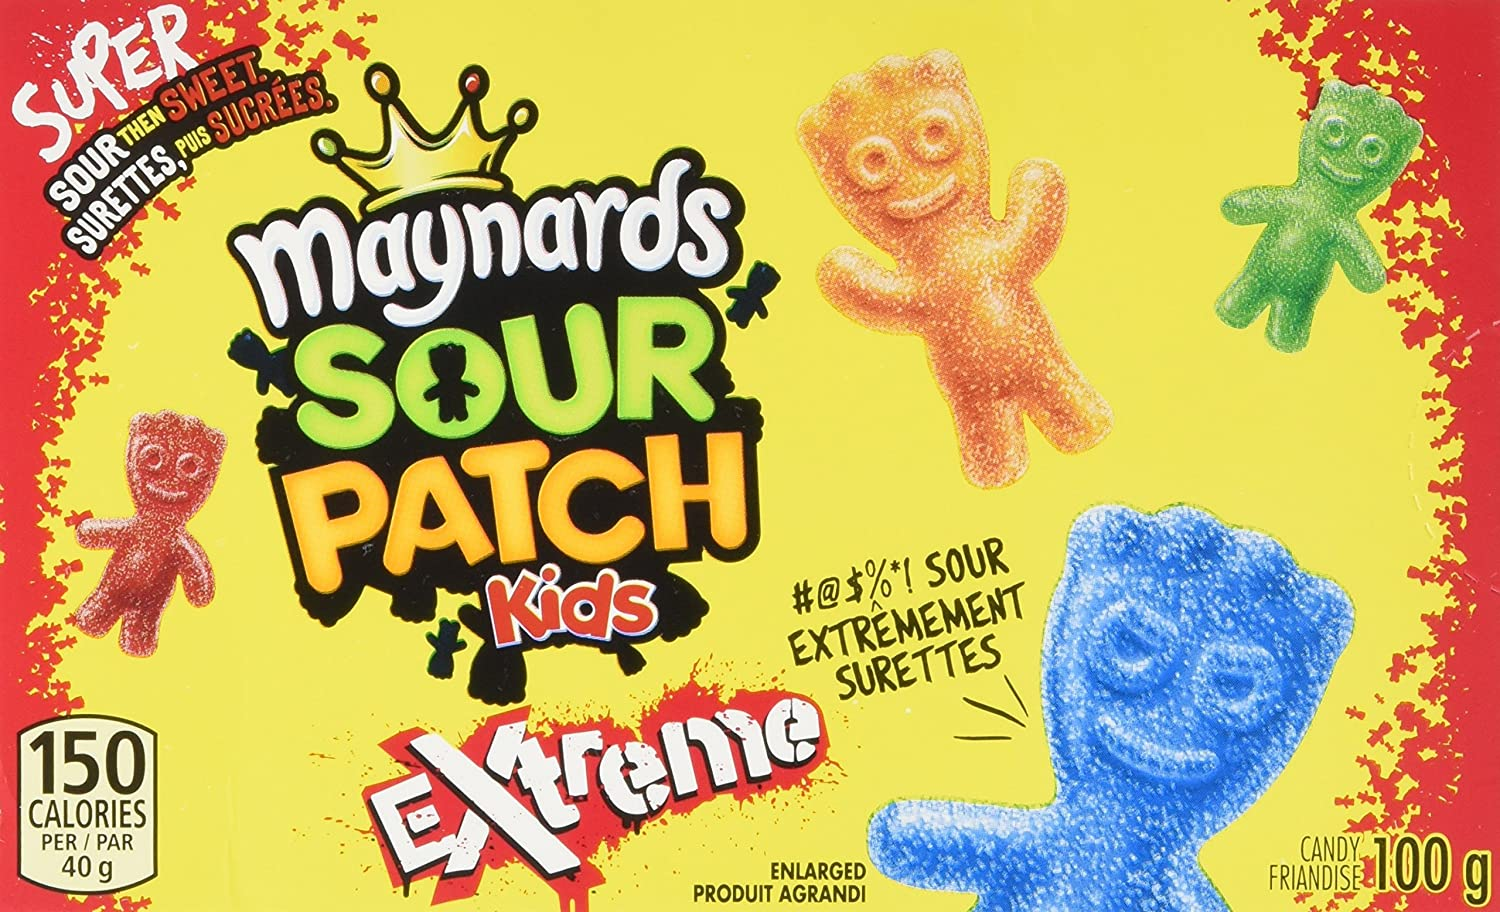 Maynards Sour Patch Kids Candy, 100 Grams